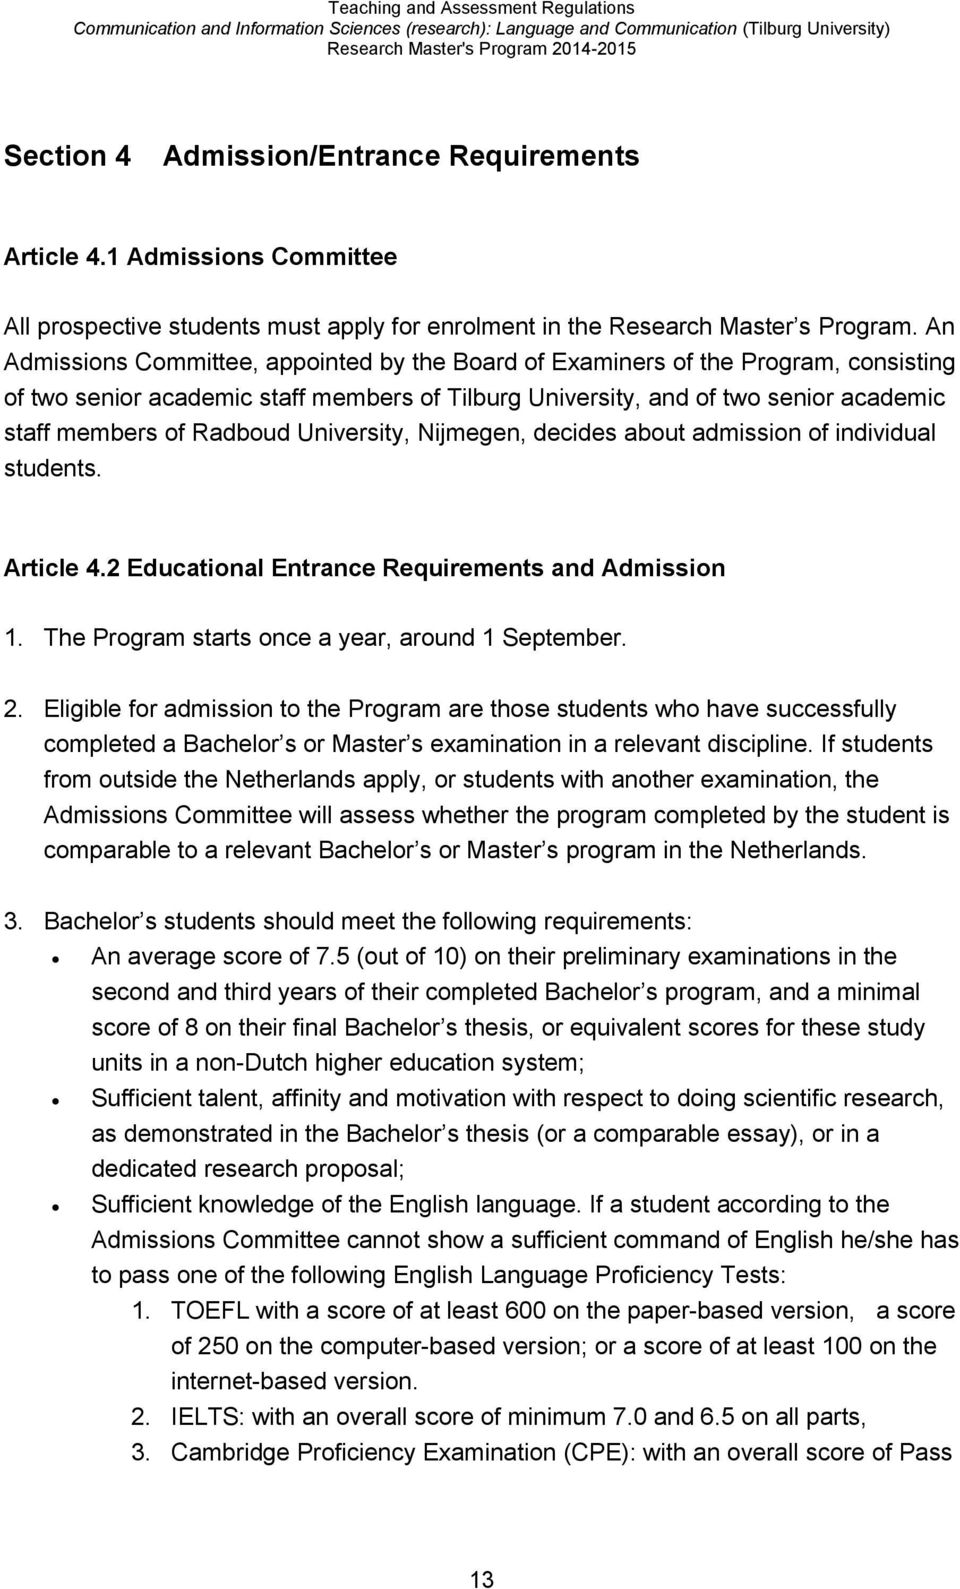 University, Nijmegen, decides about admission of individual students. Article 4.2 Educational Entrance Requirements and Admission 1. The Program starts once a year, around 1 September. 2.